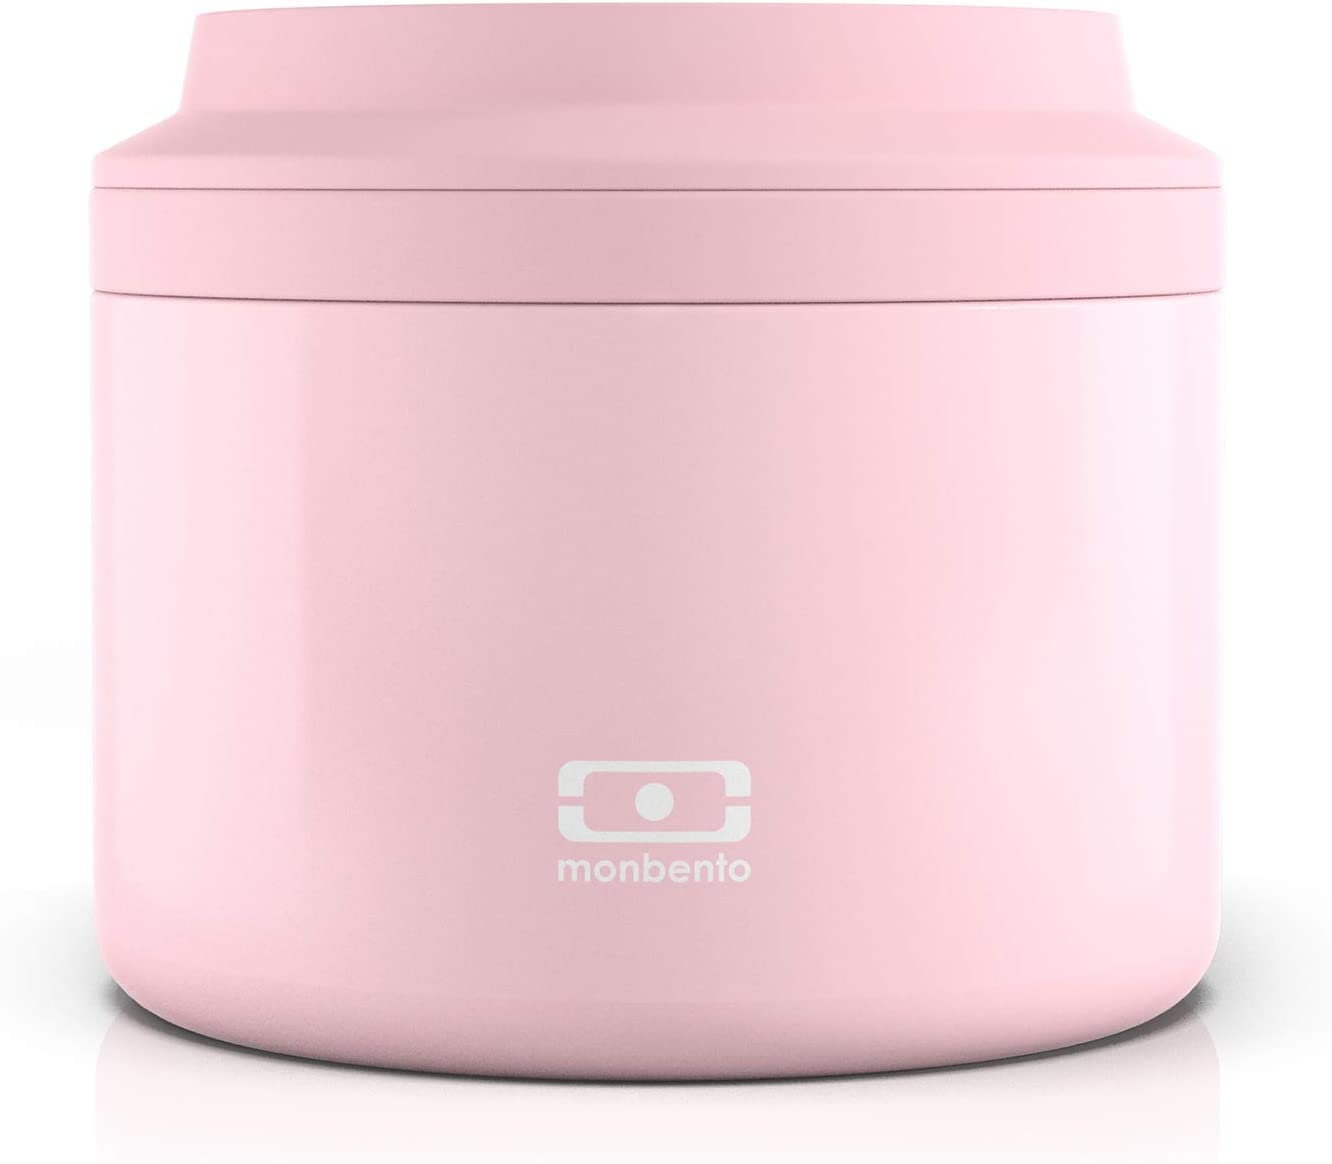 monbento - MB Element Litchi Pink Insulated Container - Leakproof and Insulated Lunch Box Keeps Food hot/Cold - BPA Free - Food Grade Safe…